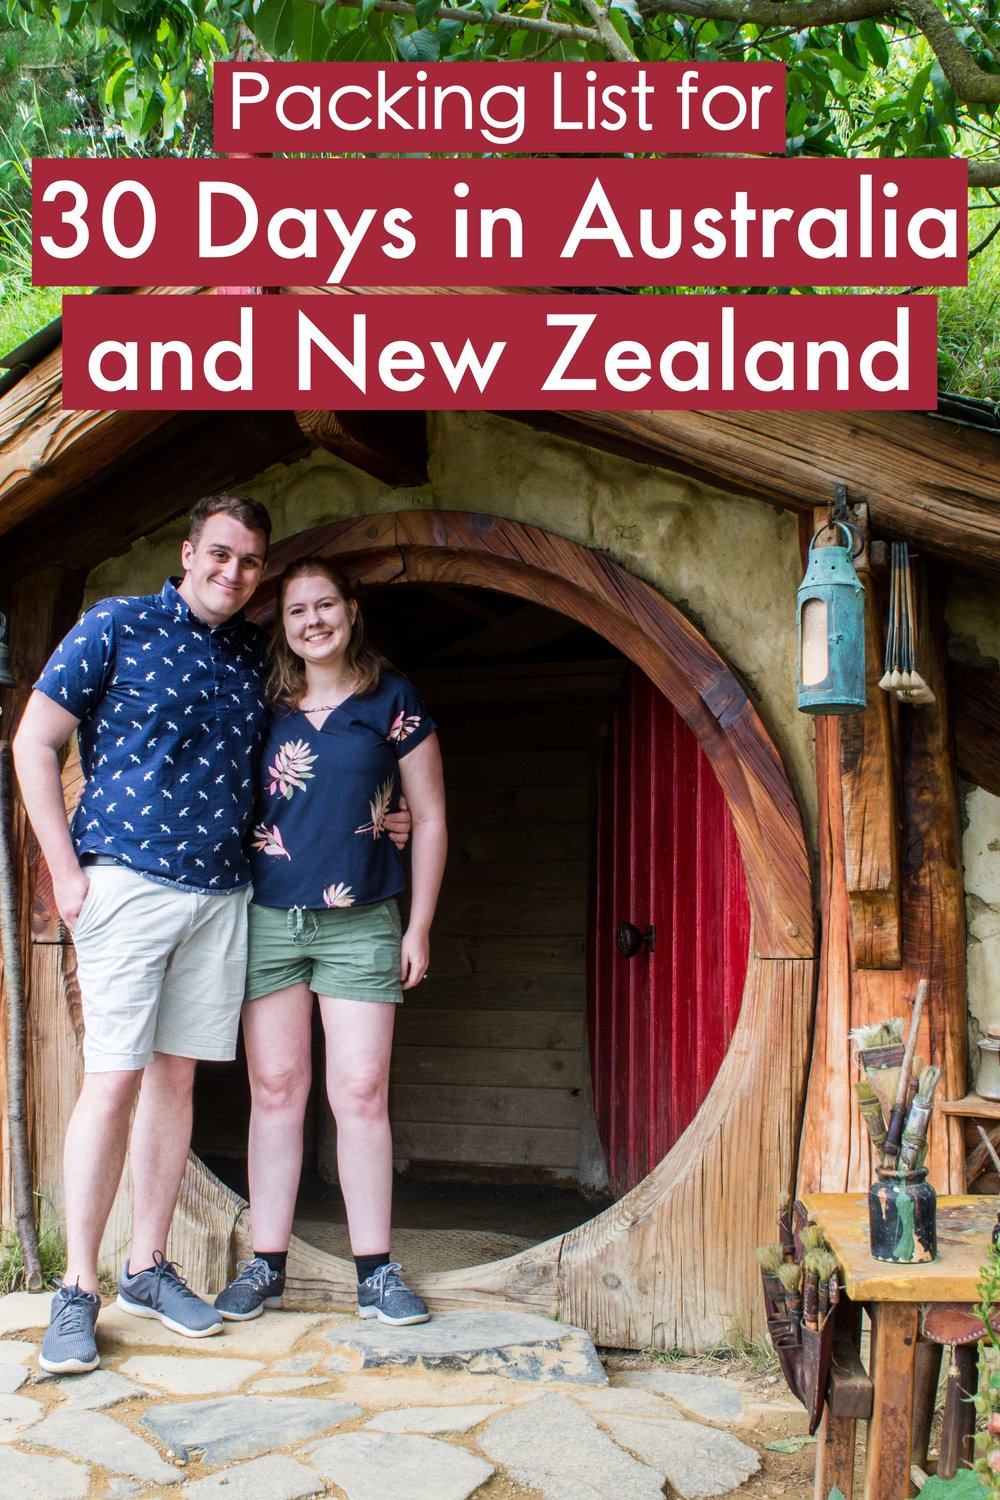 How to Pack for one month in New Zealand and Australia.  Complete packing list for 30 days.  #packing #australia #newzealand #travel